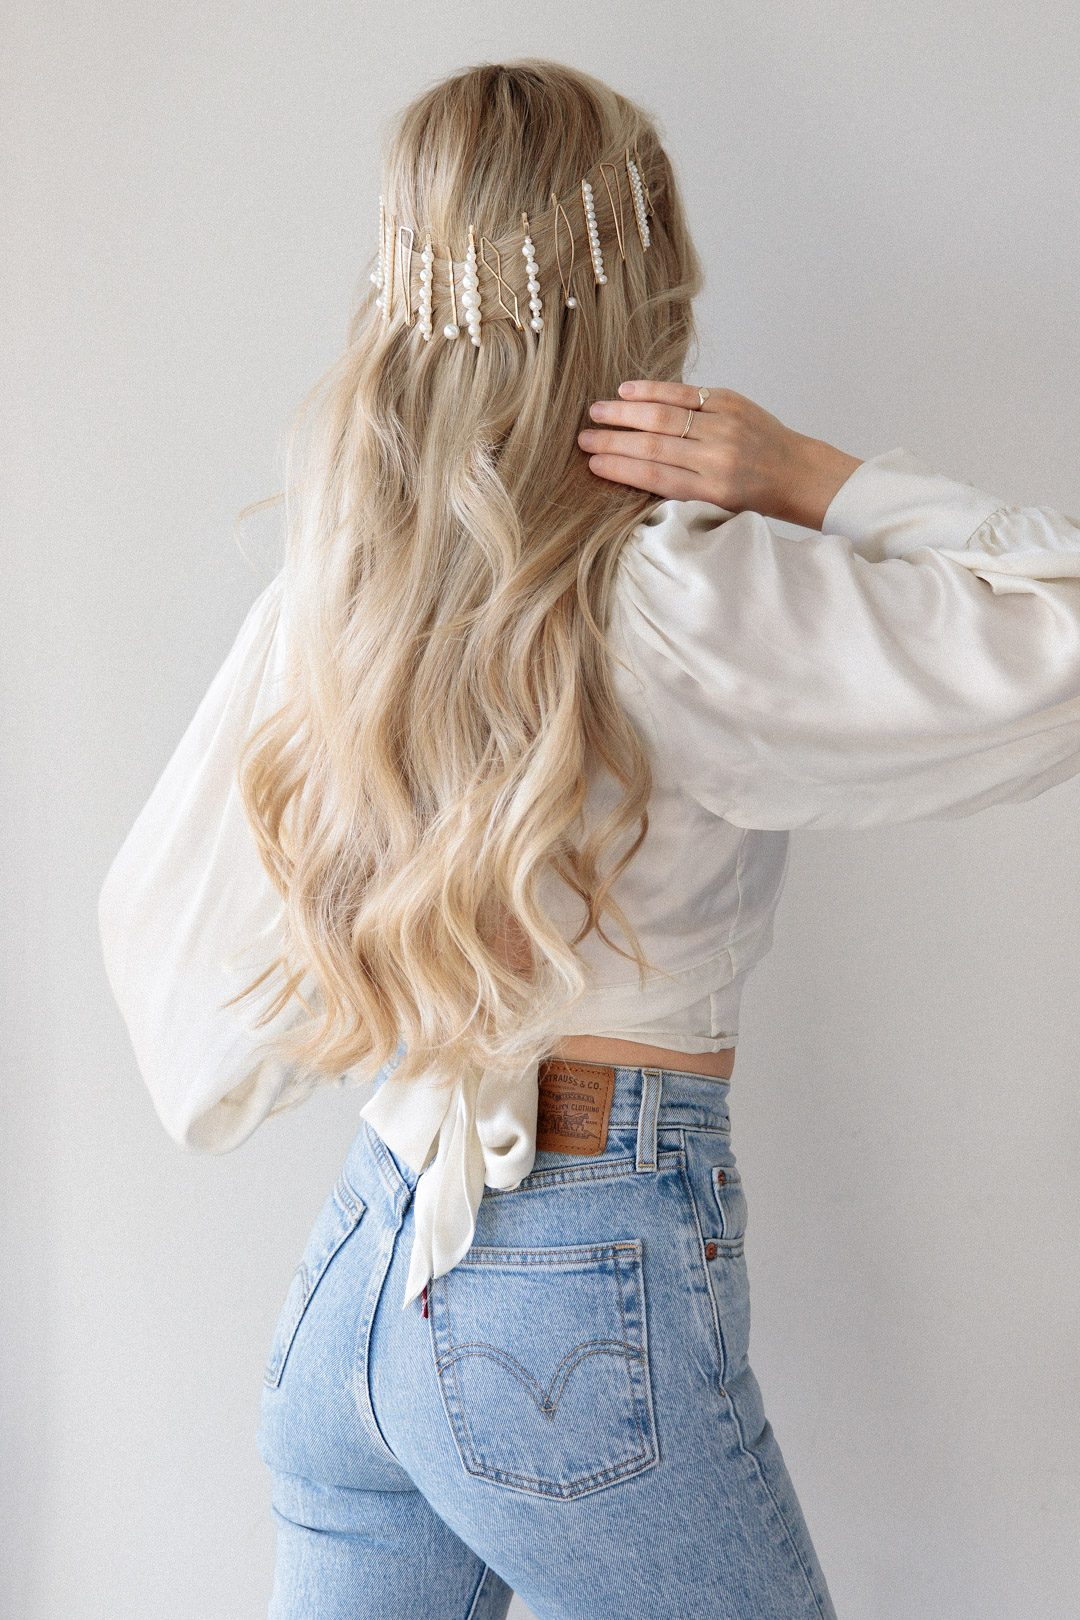 MUST TRY HALF UP HALF DOWN HAIRSTYLE